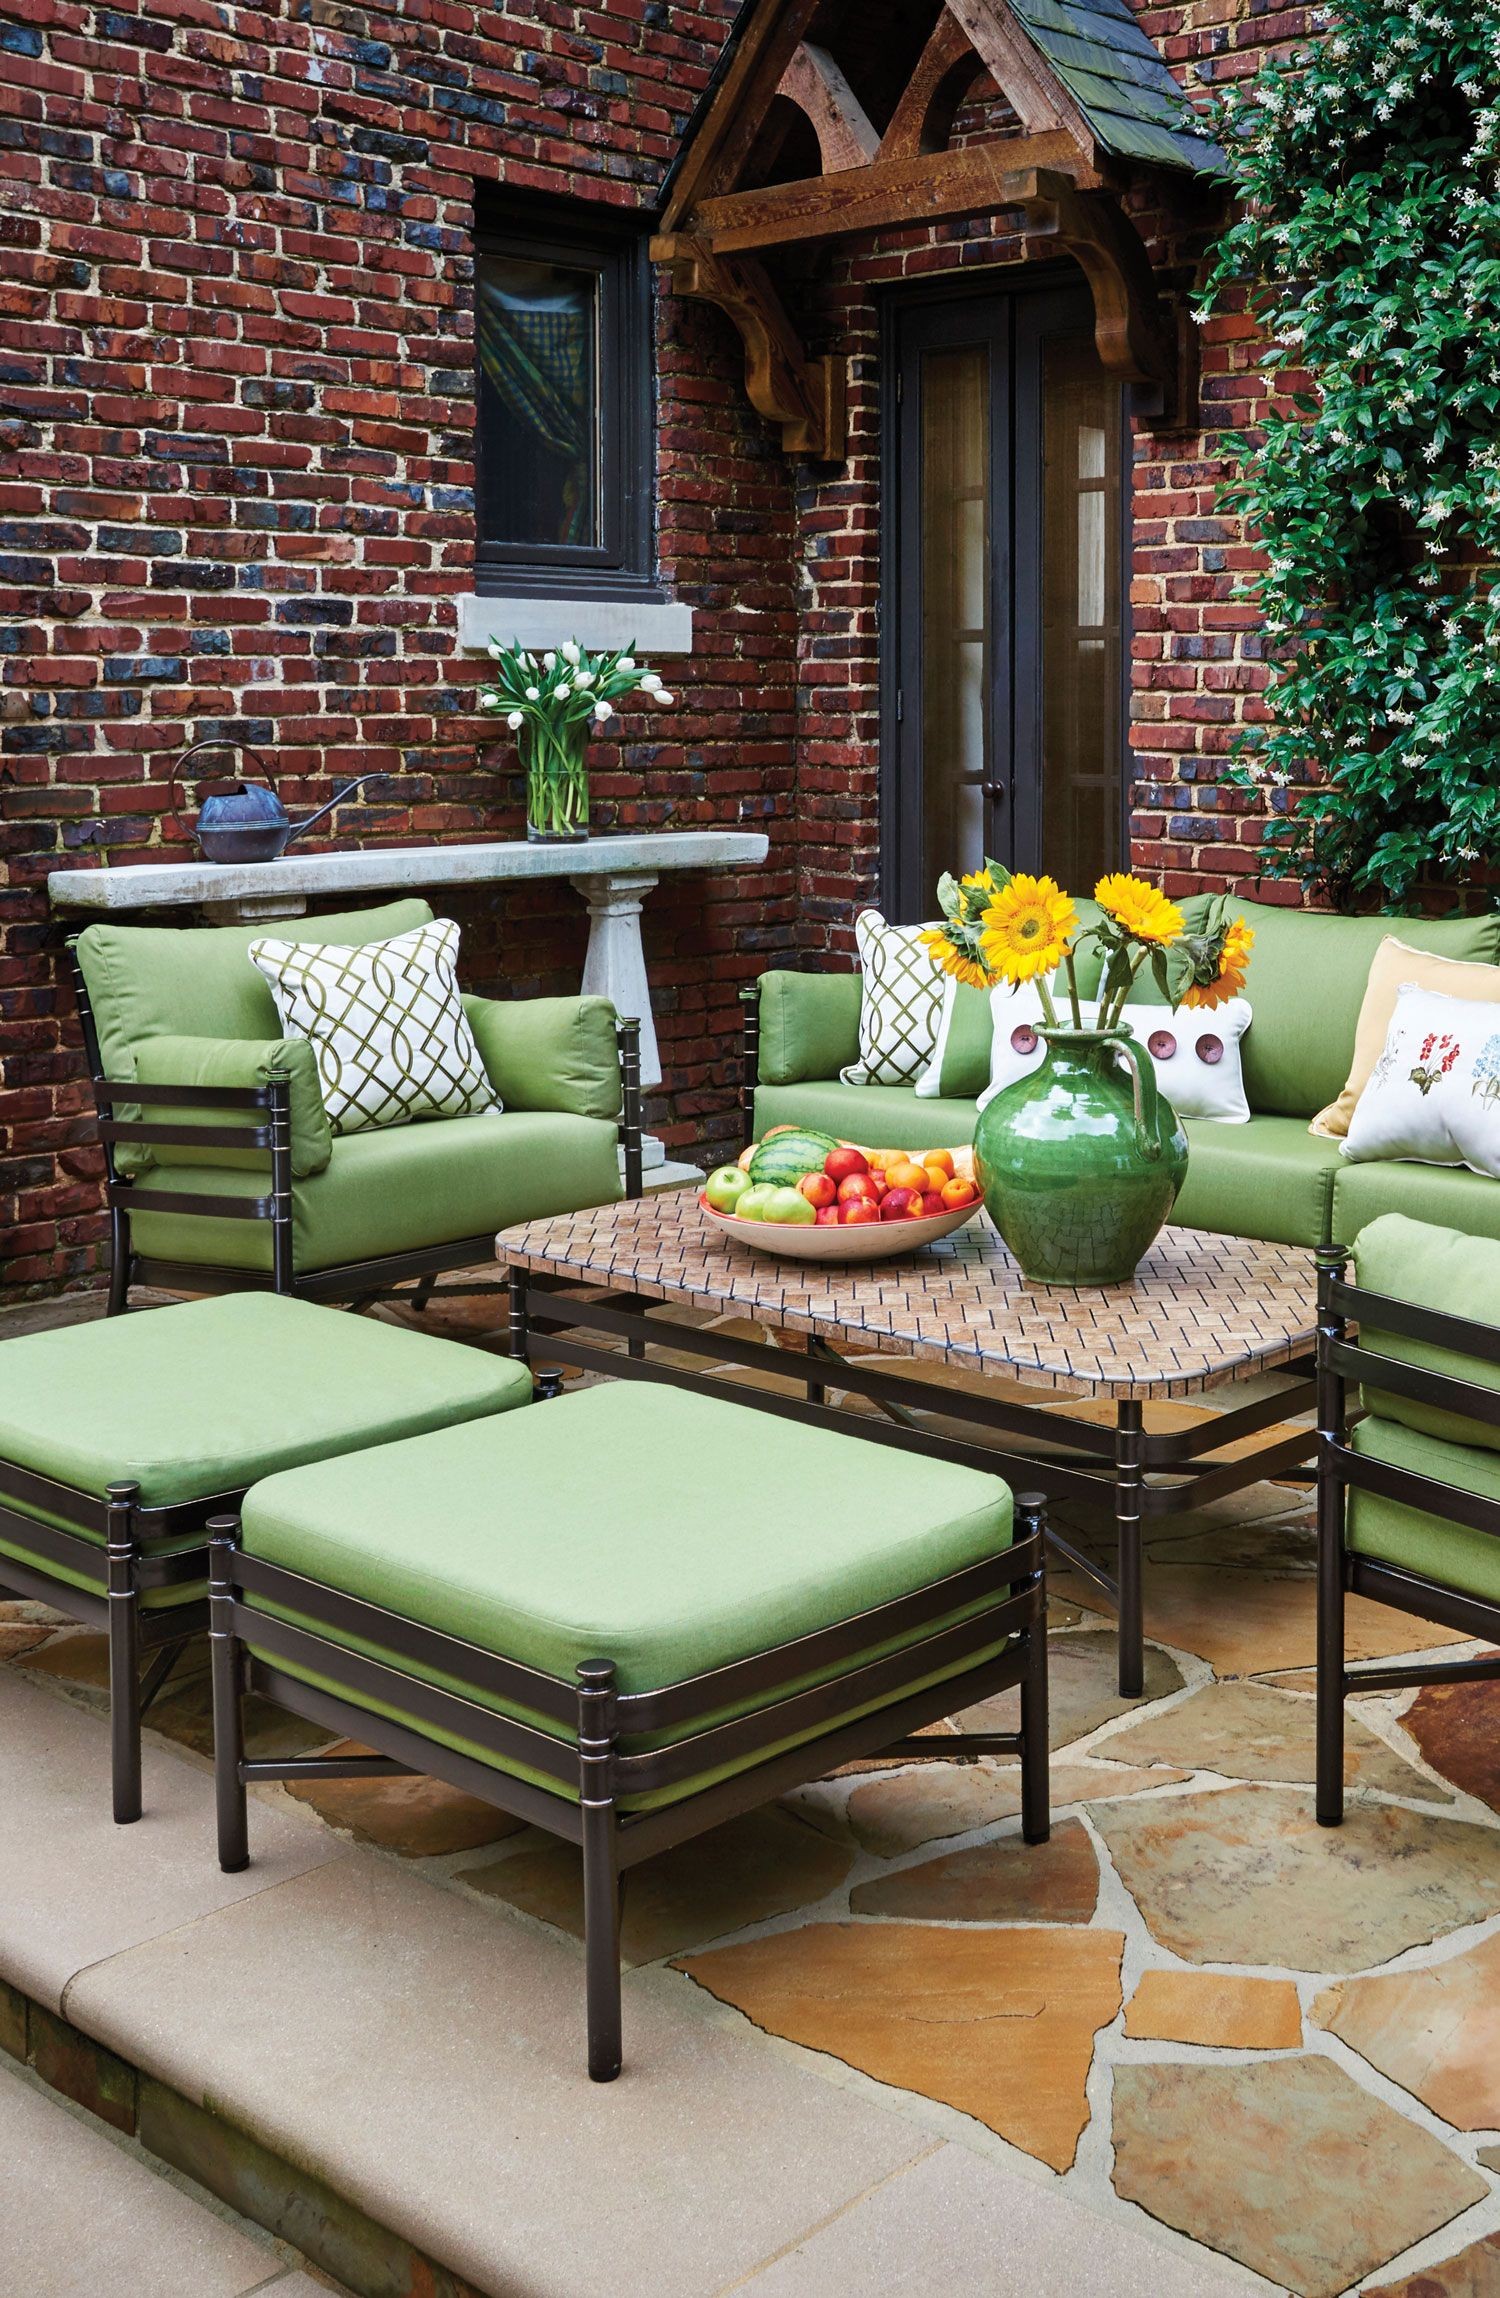 Create your own beautiful outdoor space. | Outdoor space ... on Living Spaces Outdoor Sectional id=64142